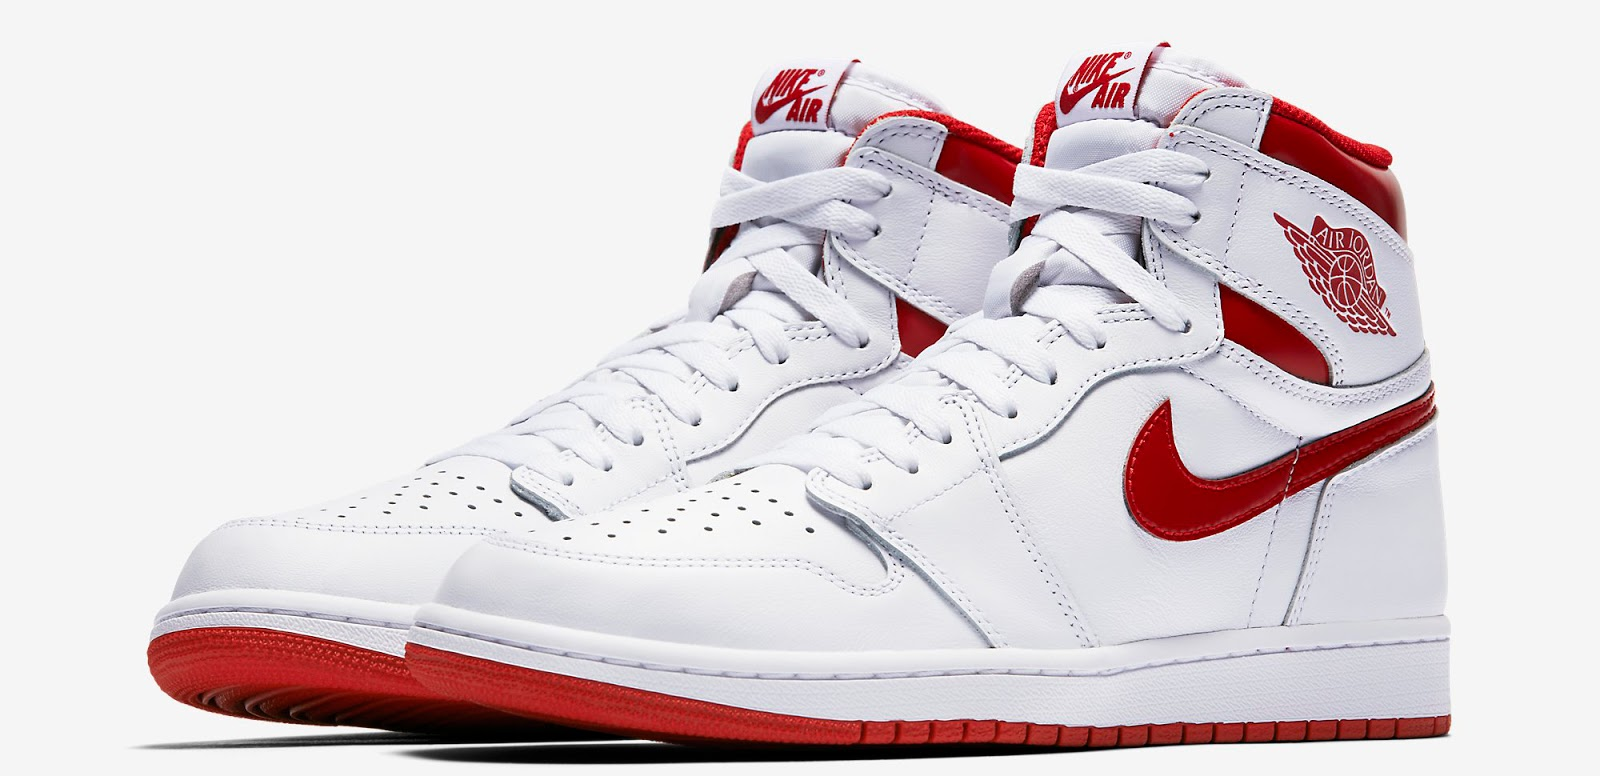 2cc8eee0da2 ajordanxi Your  1 Source For Sneaker Release Dates  Air Jordan 1 ...